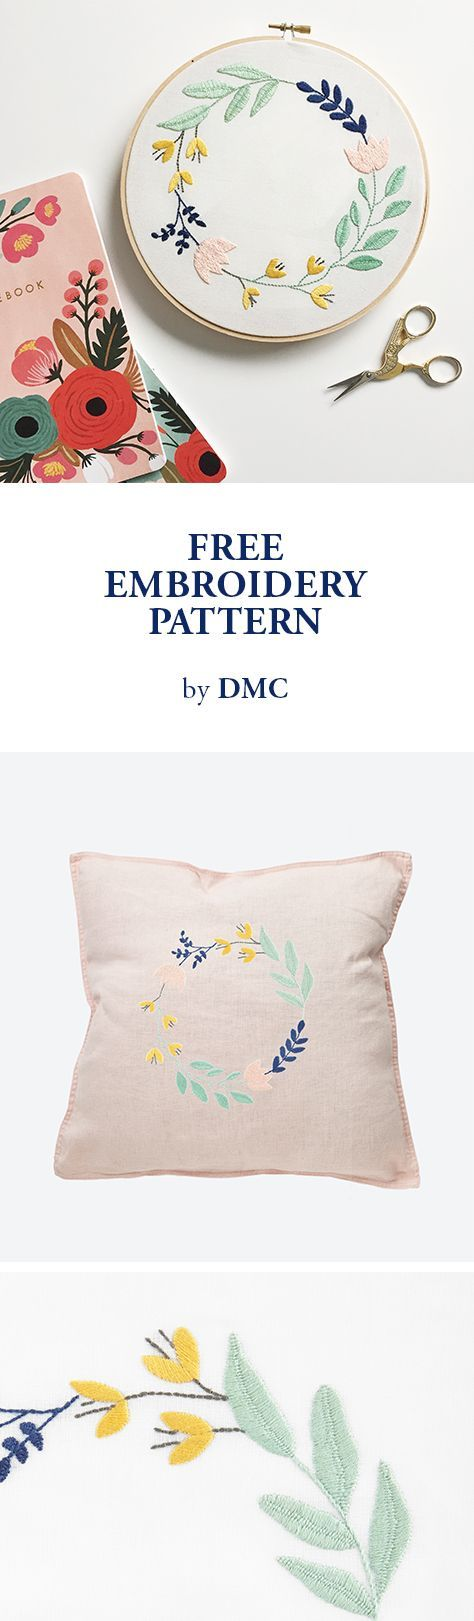 Free Embroidery Pattern From Dmc Embroidery Ideas Embroidery For